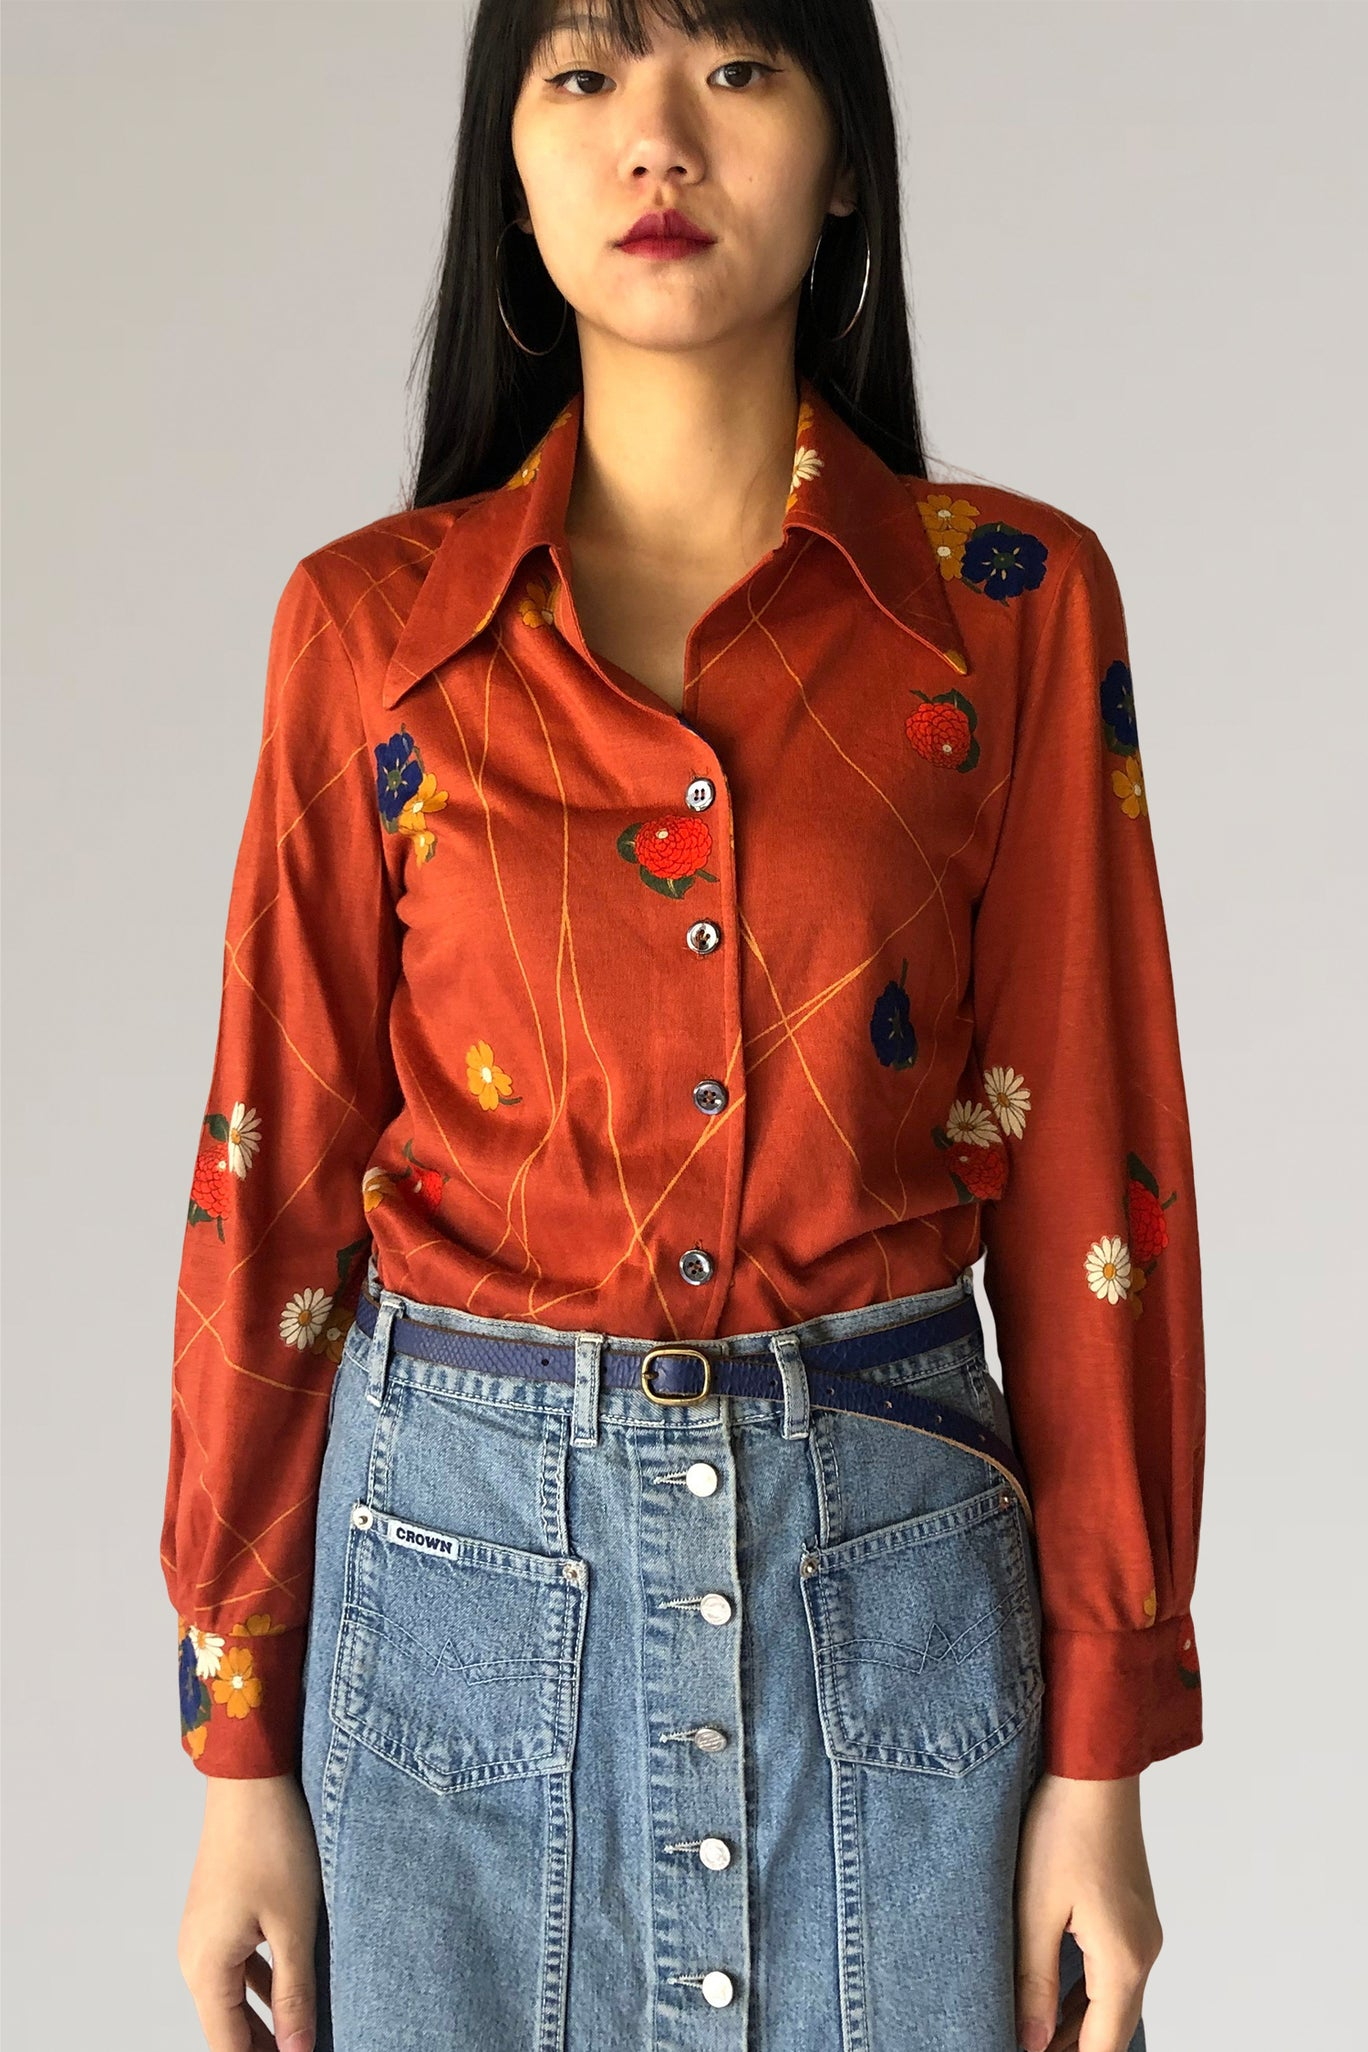 70s blouse - PICKNWEIGHT - VINTAGE KILO STORE